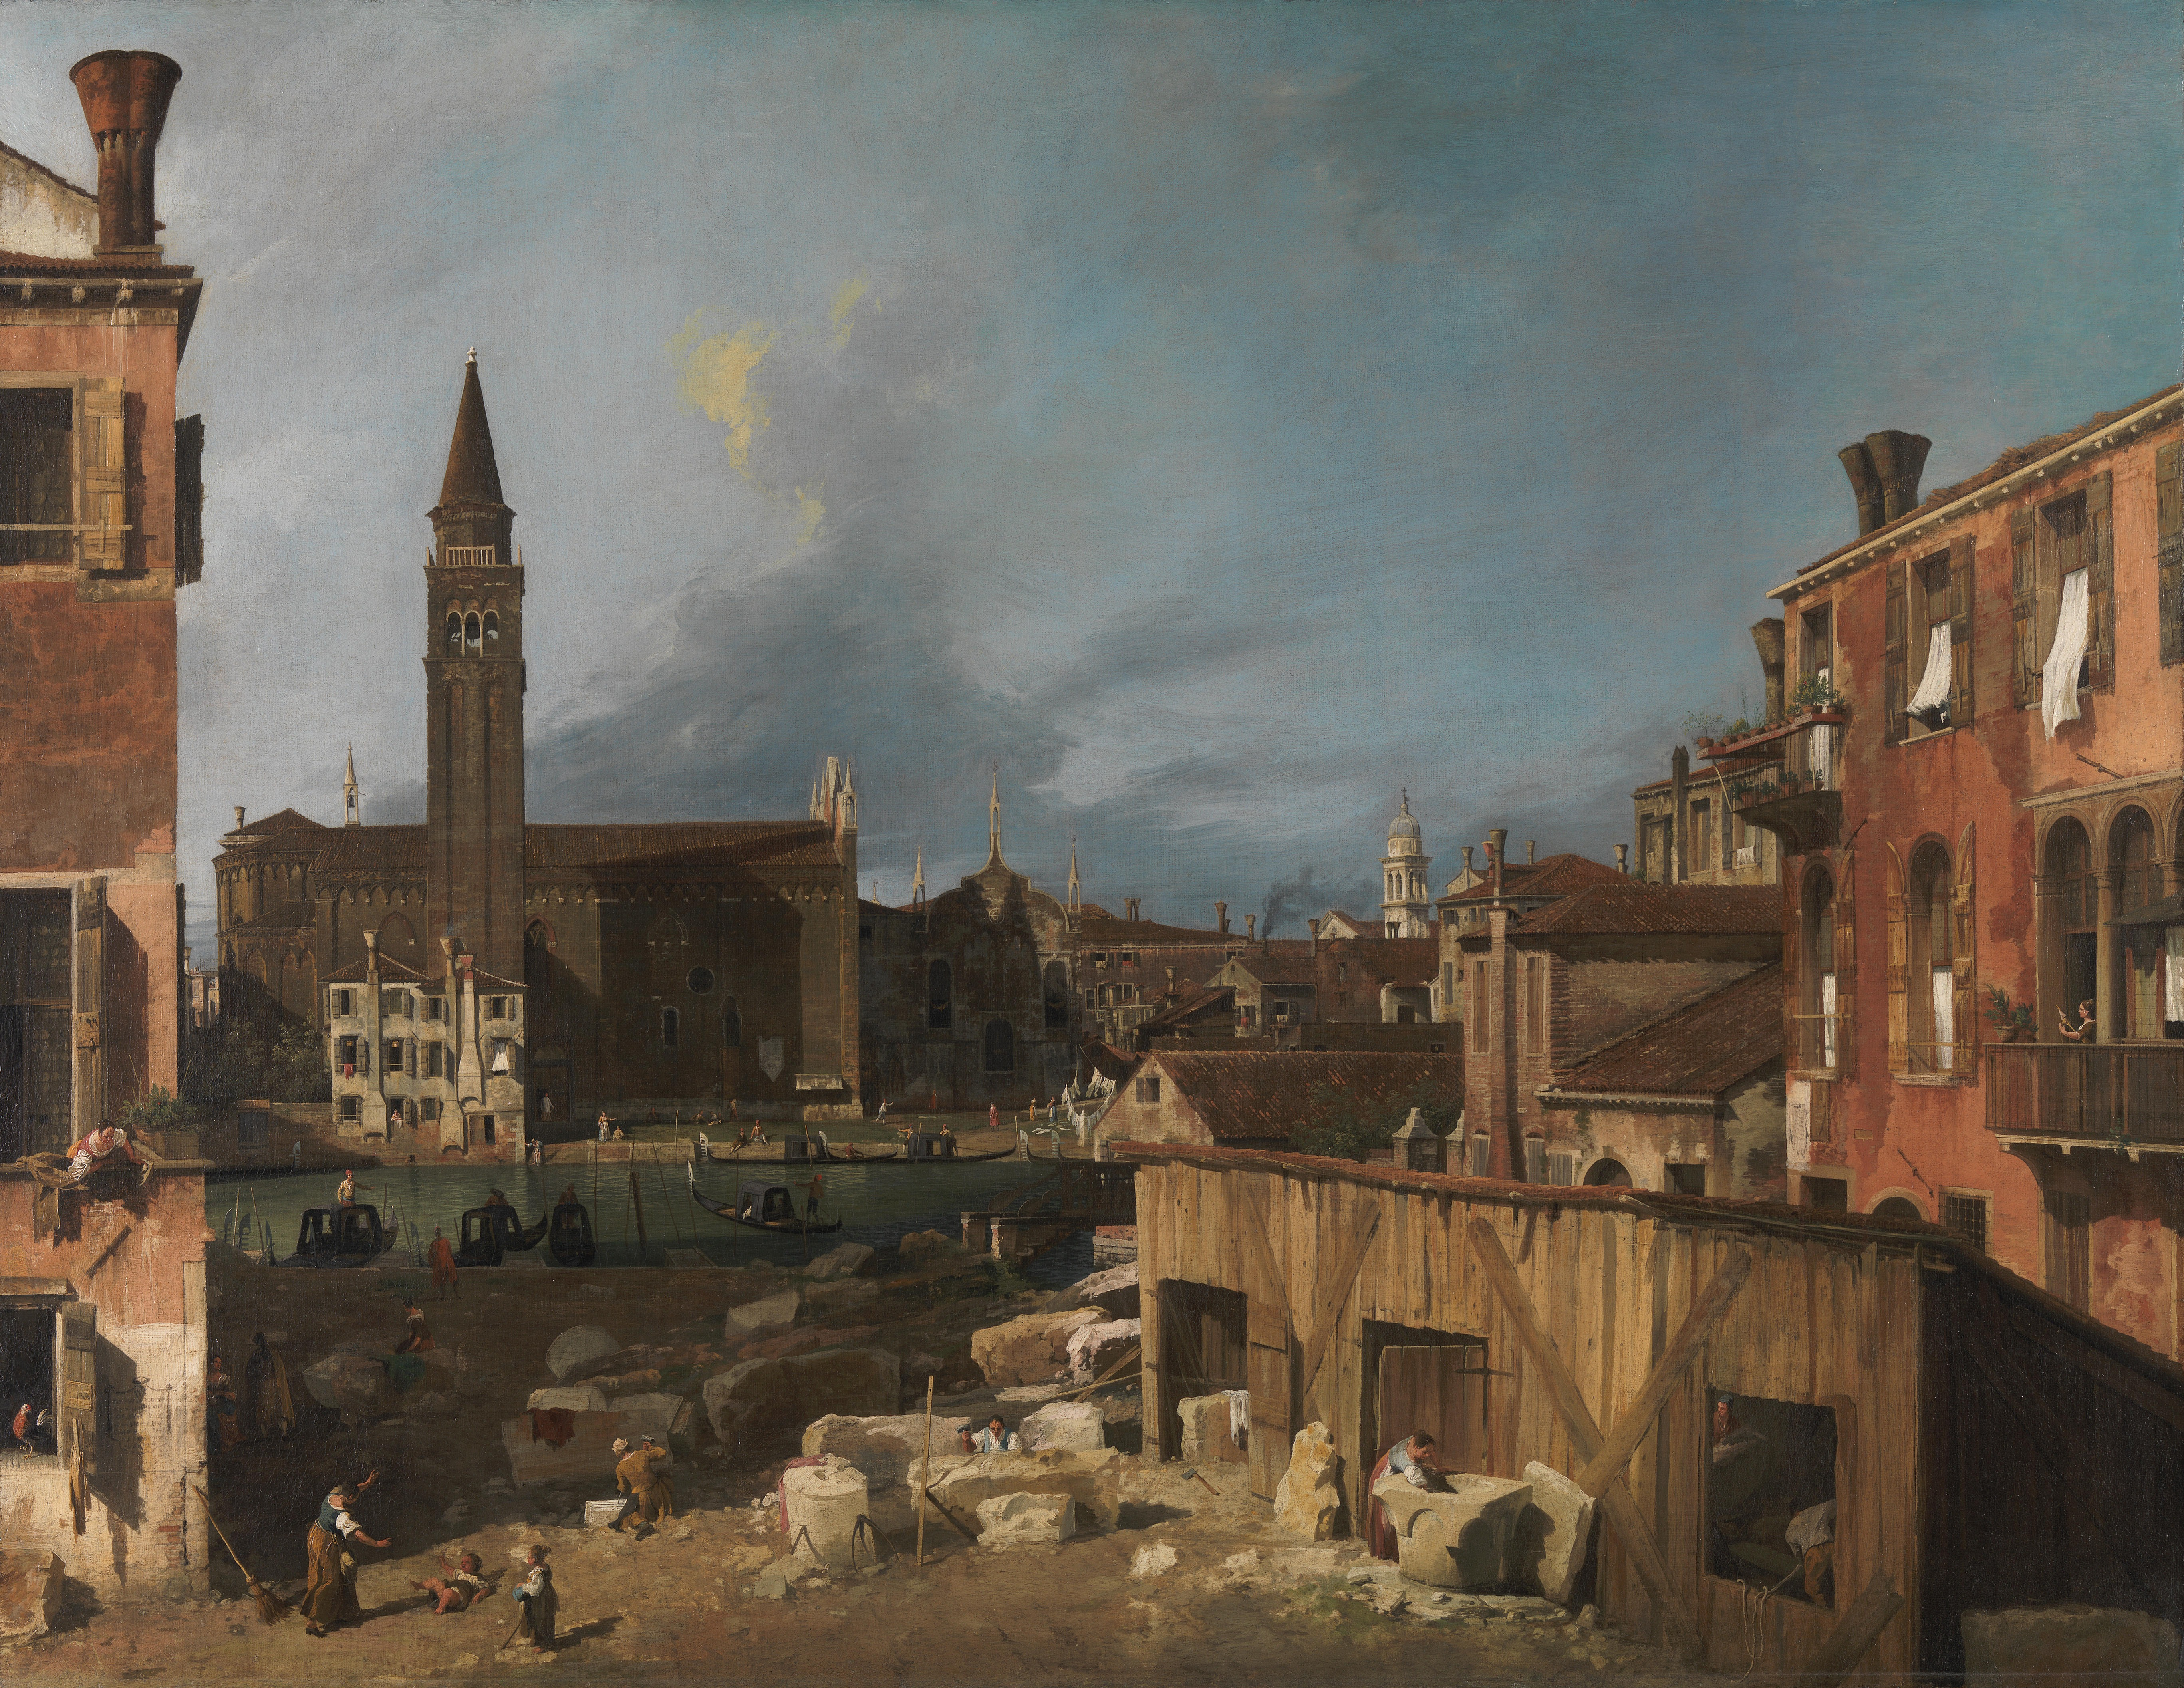 Stonemason's Yard - Courtesy National Gallery, London